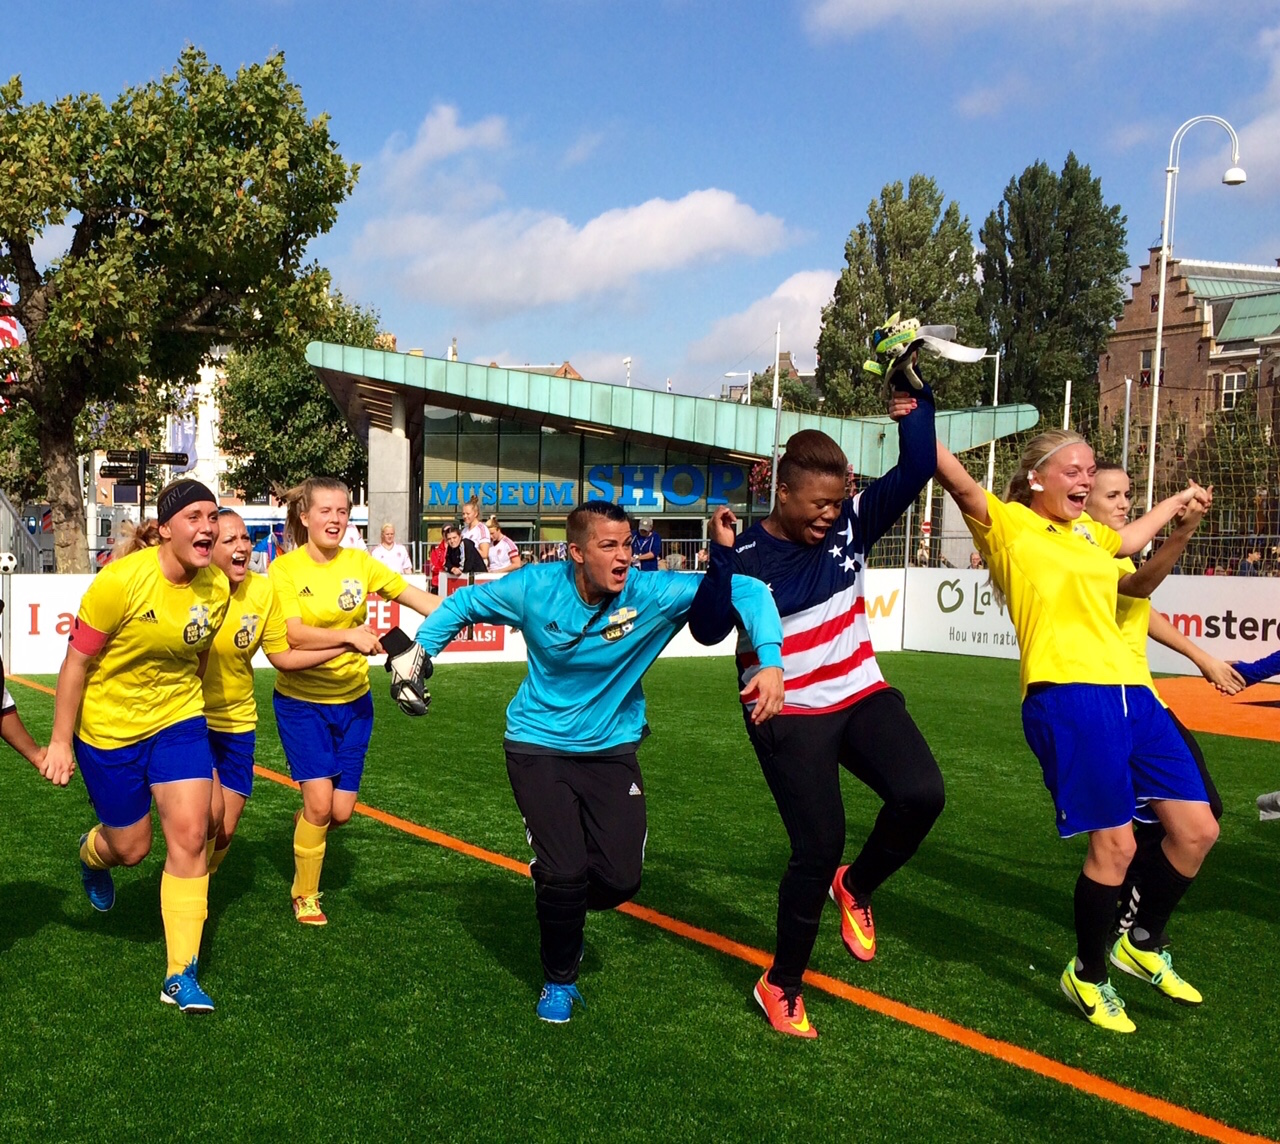 Team Sweden and USA celebrate after their match at the Homeless World Cup. Photo: Laura Smith